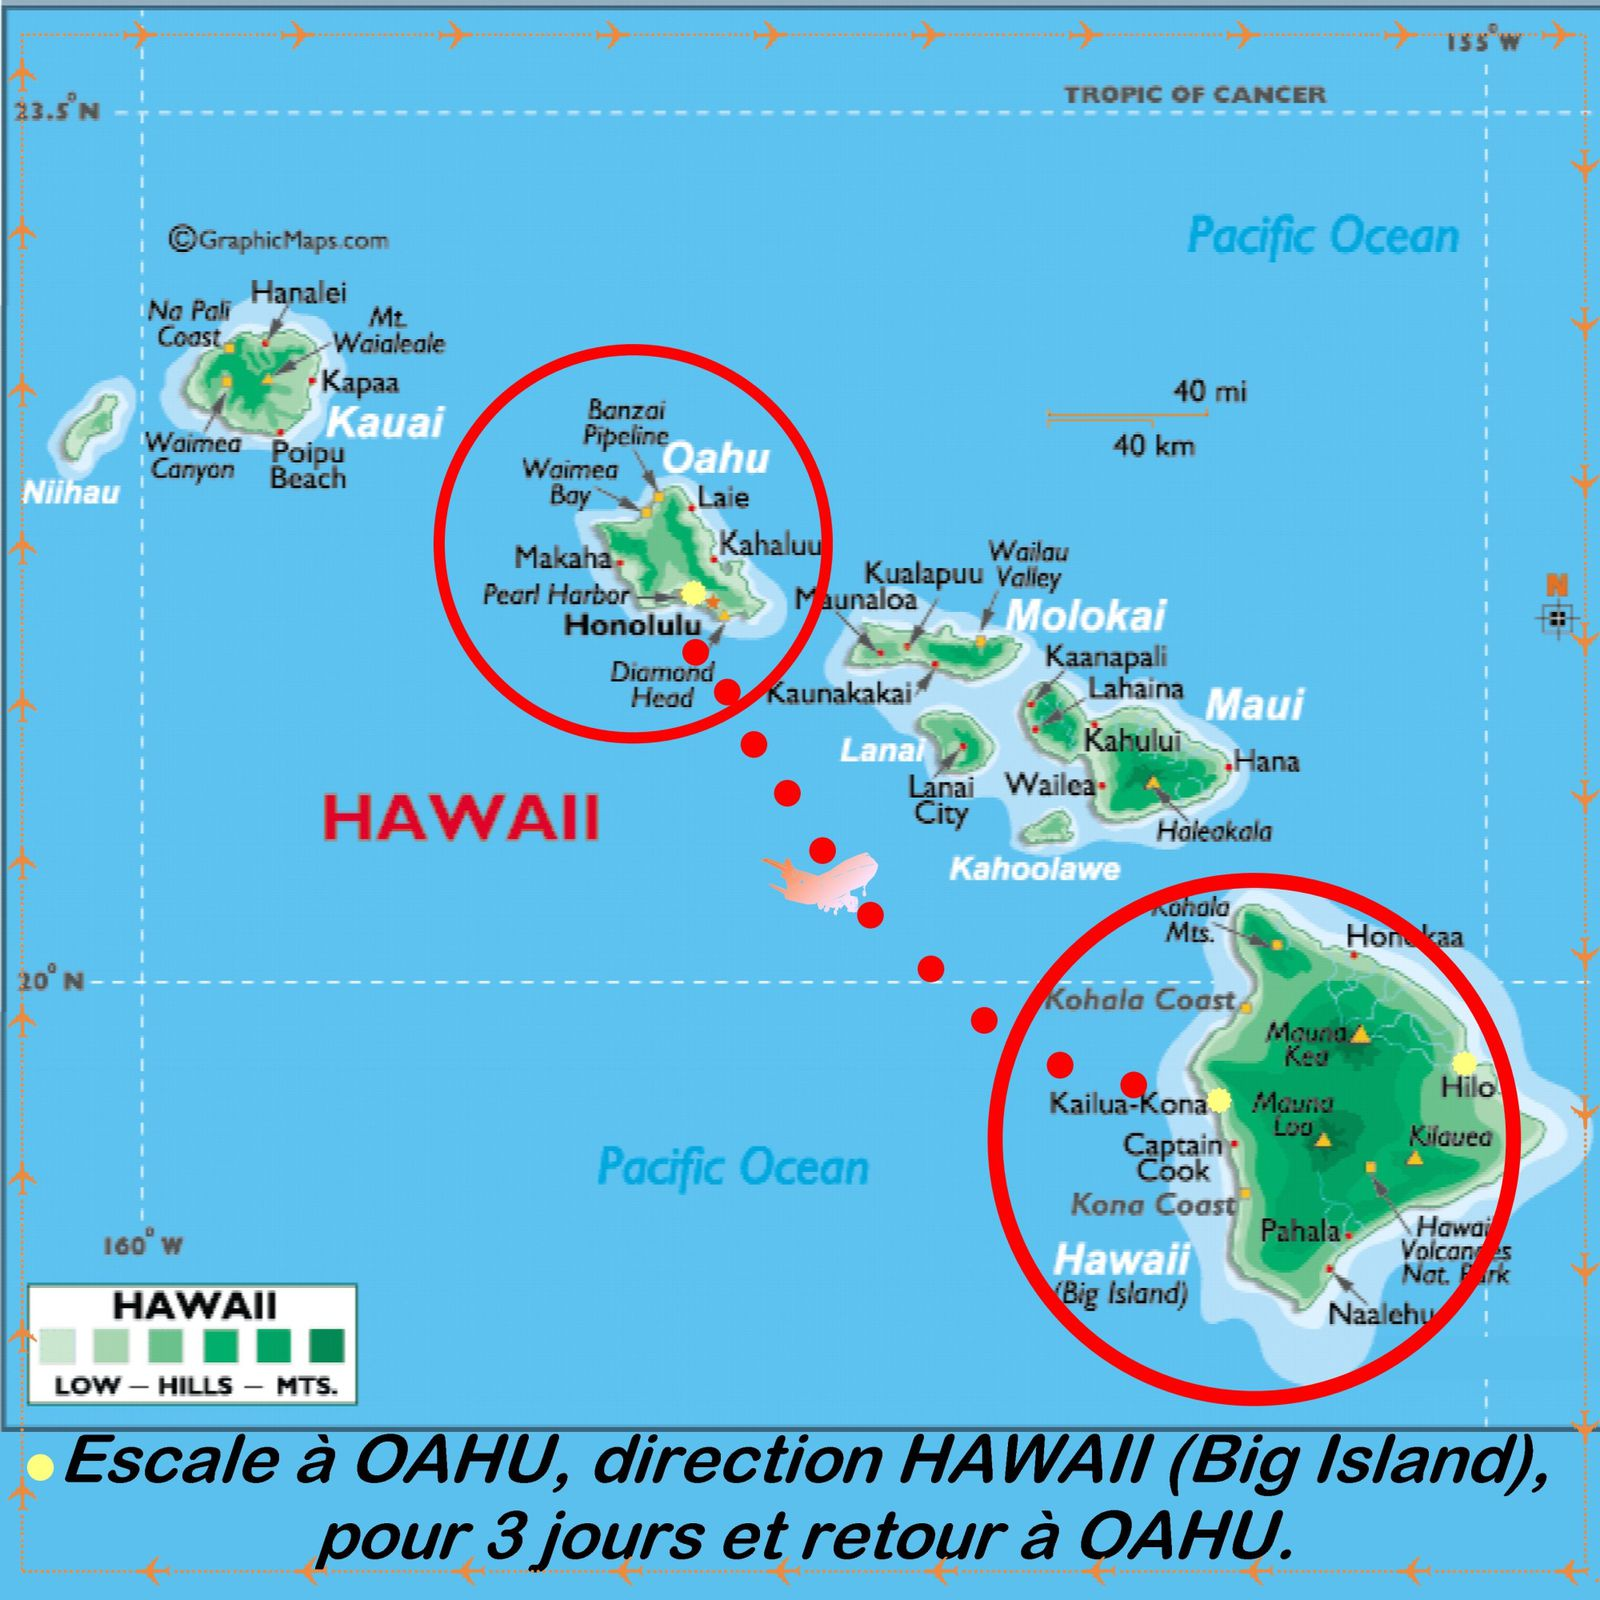 Hawaii Sur La Carte Du Monde.Archipel D Hawaii Les 4d De Paris A Tahiti